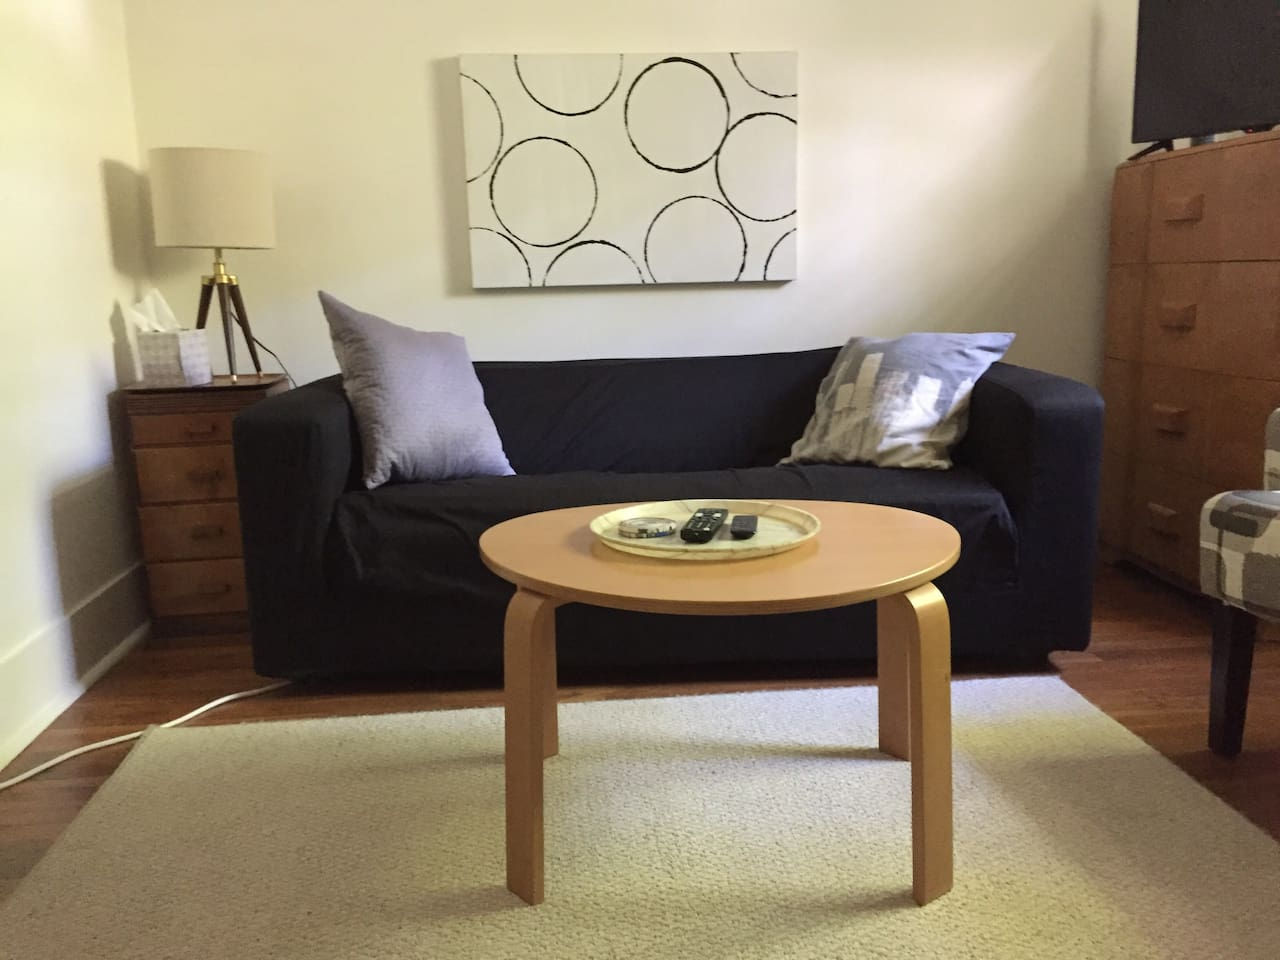 Make yourself at home in this simple and welcoming room. Mid Century meets Ikea, newly refinished floors, freshly painted white. Fridge, microwave, AC, TV, WiFi.